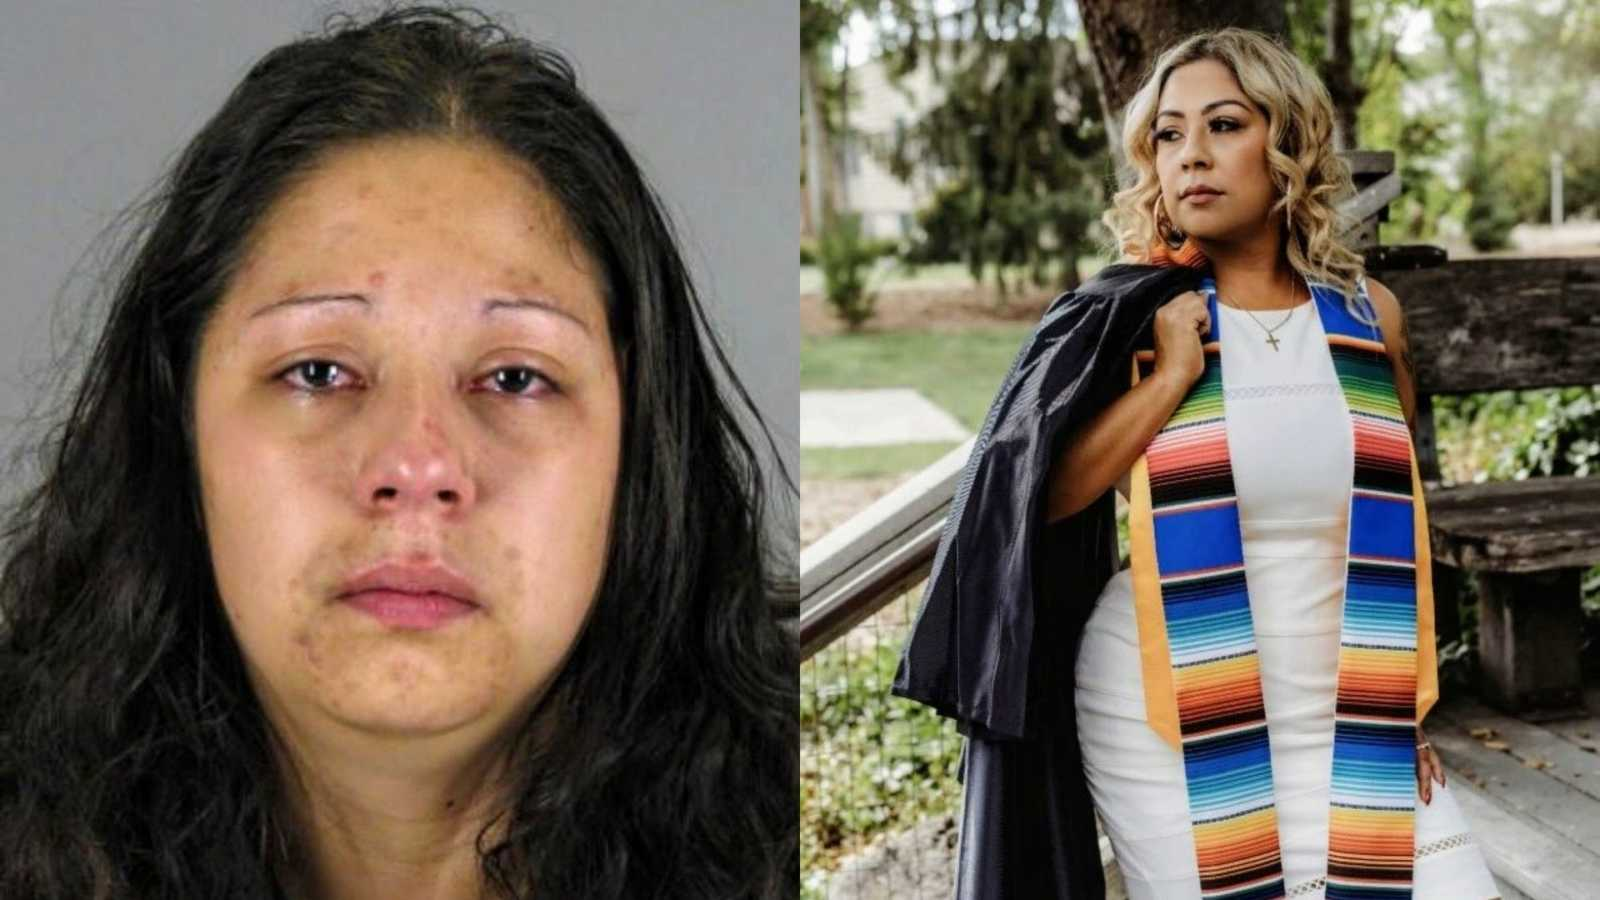 Human trafficking survivor shows one of her many mugshots and her college graduation photos